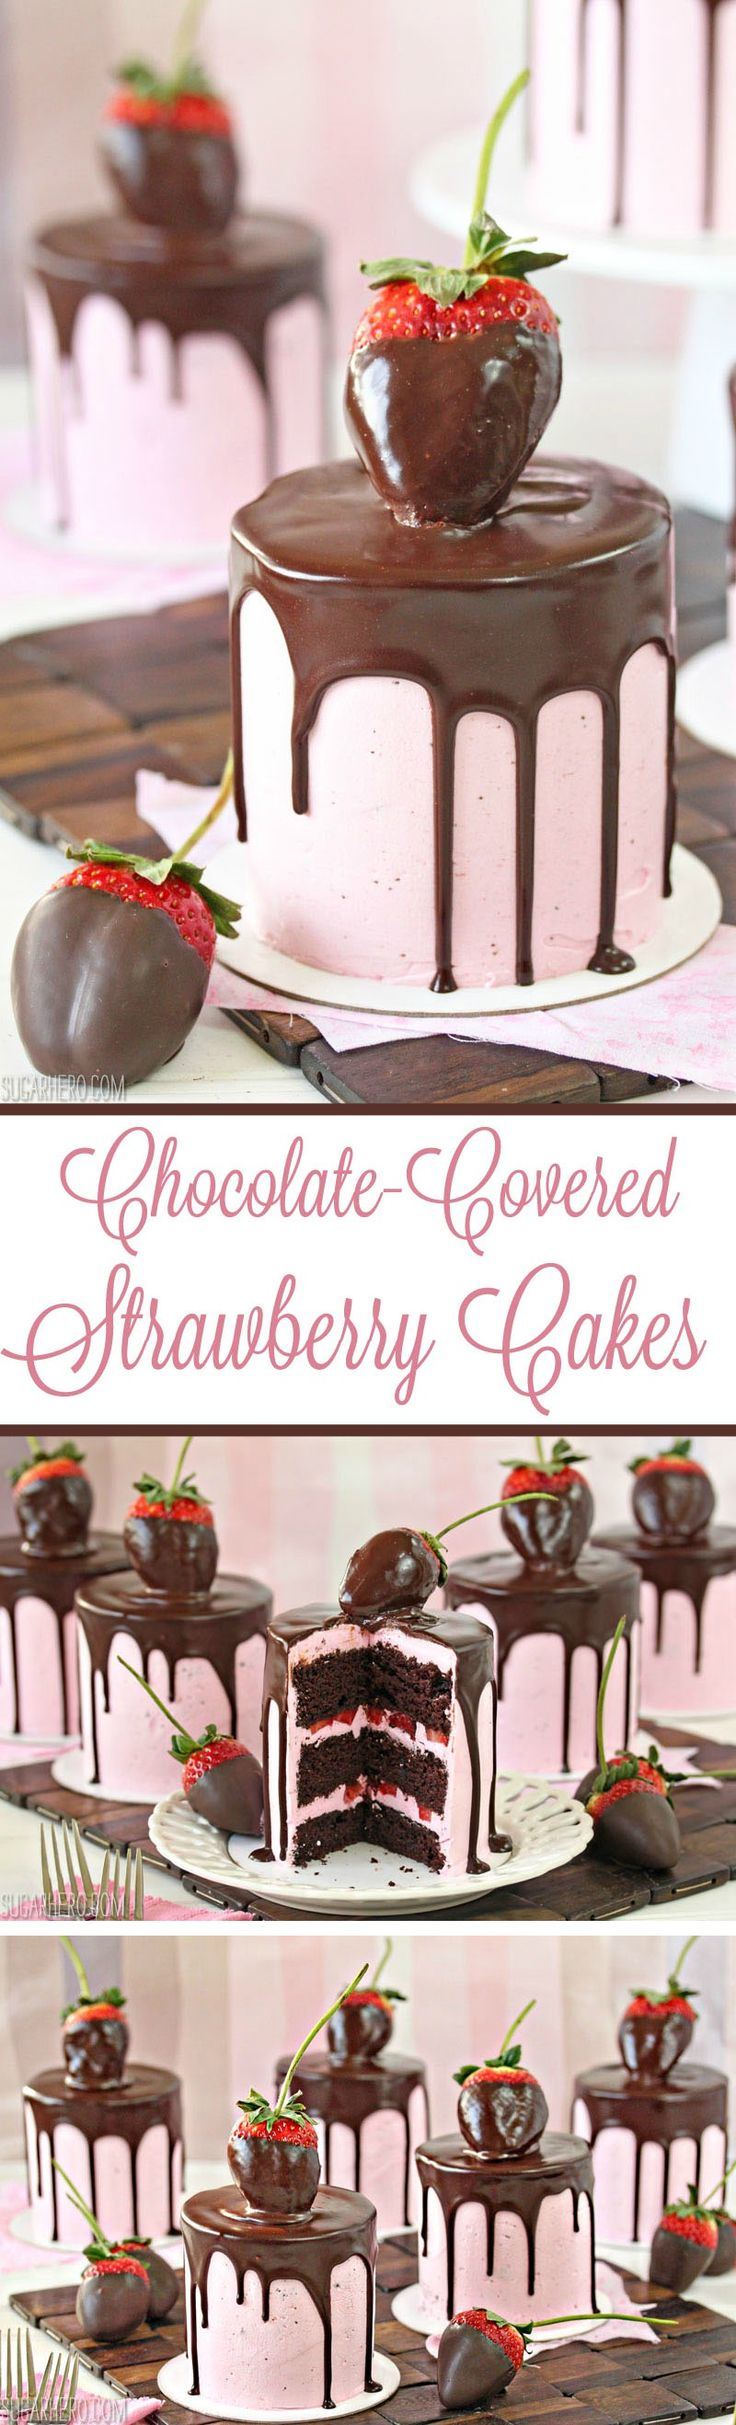 Chocolate-Covered Strawberry Cakes, with chocolate cake and fresh strawberry…